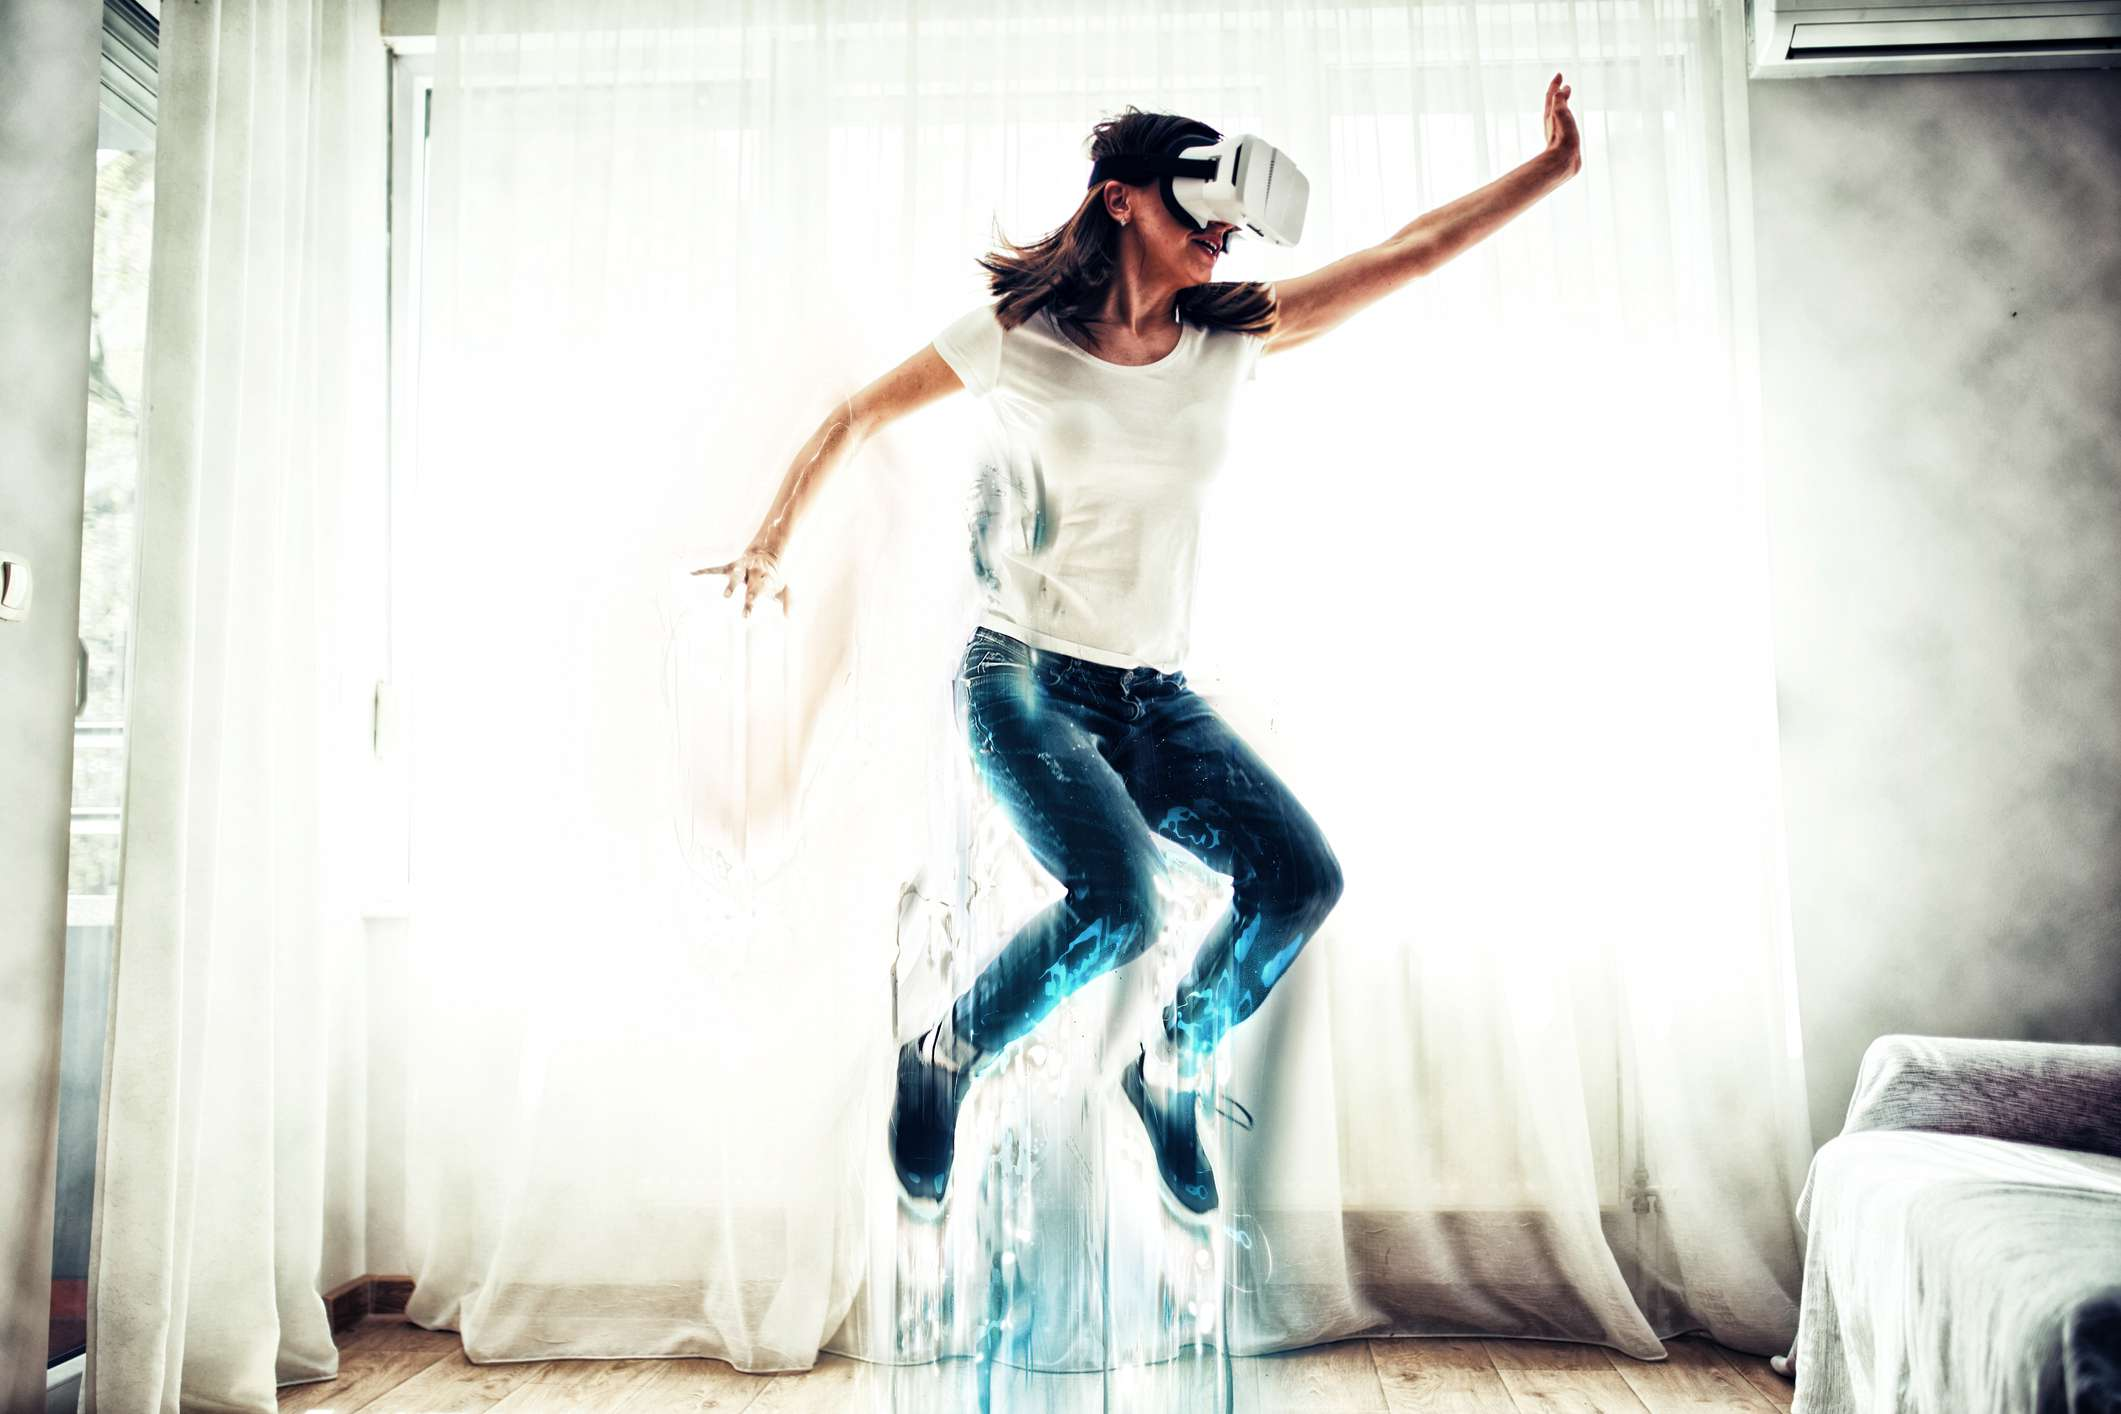 Woman jumping into the air while playing a VR game.